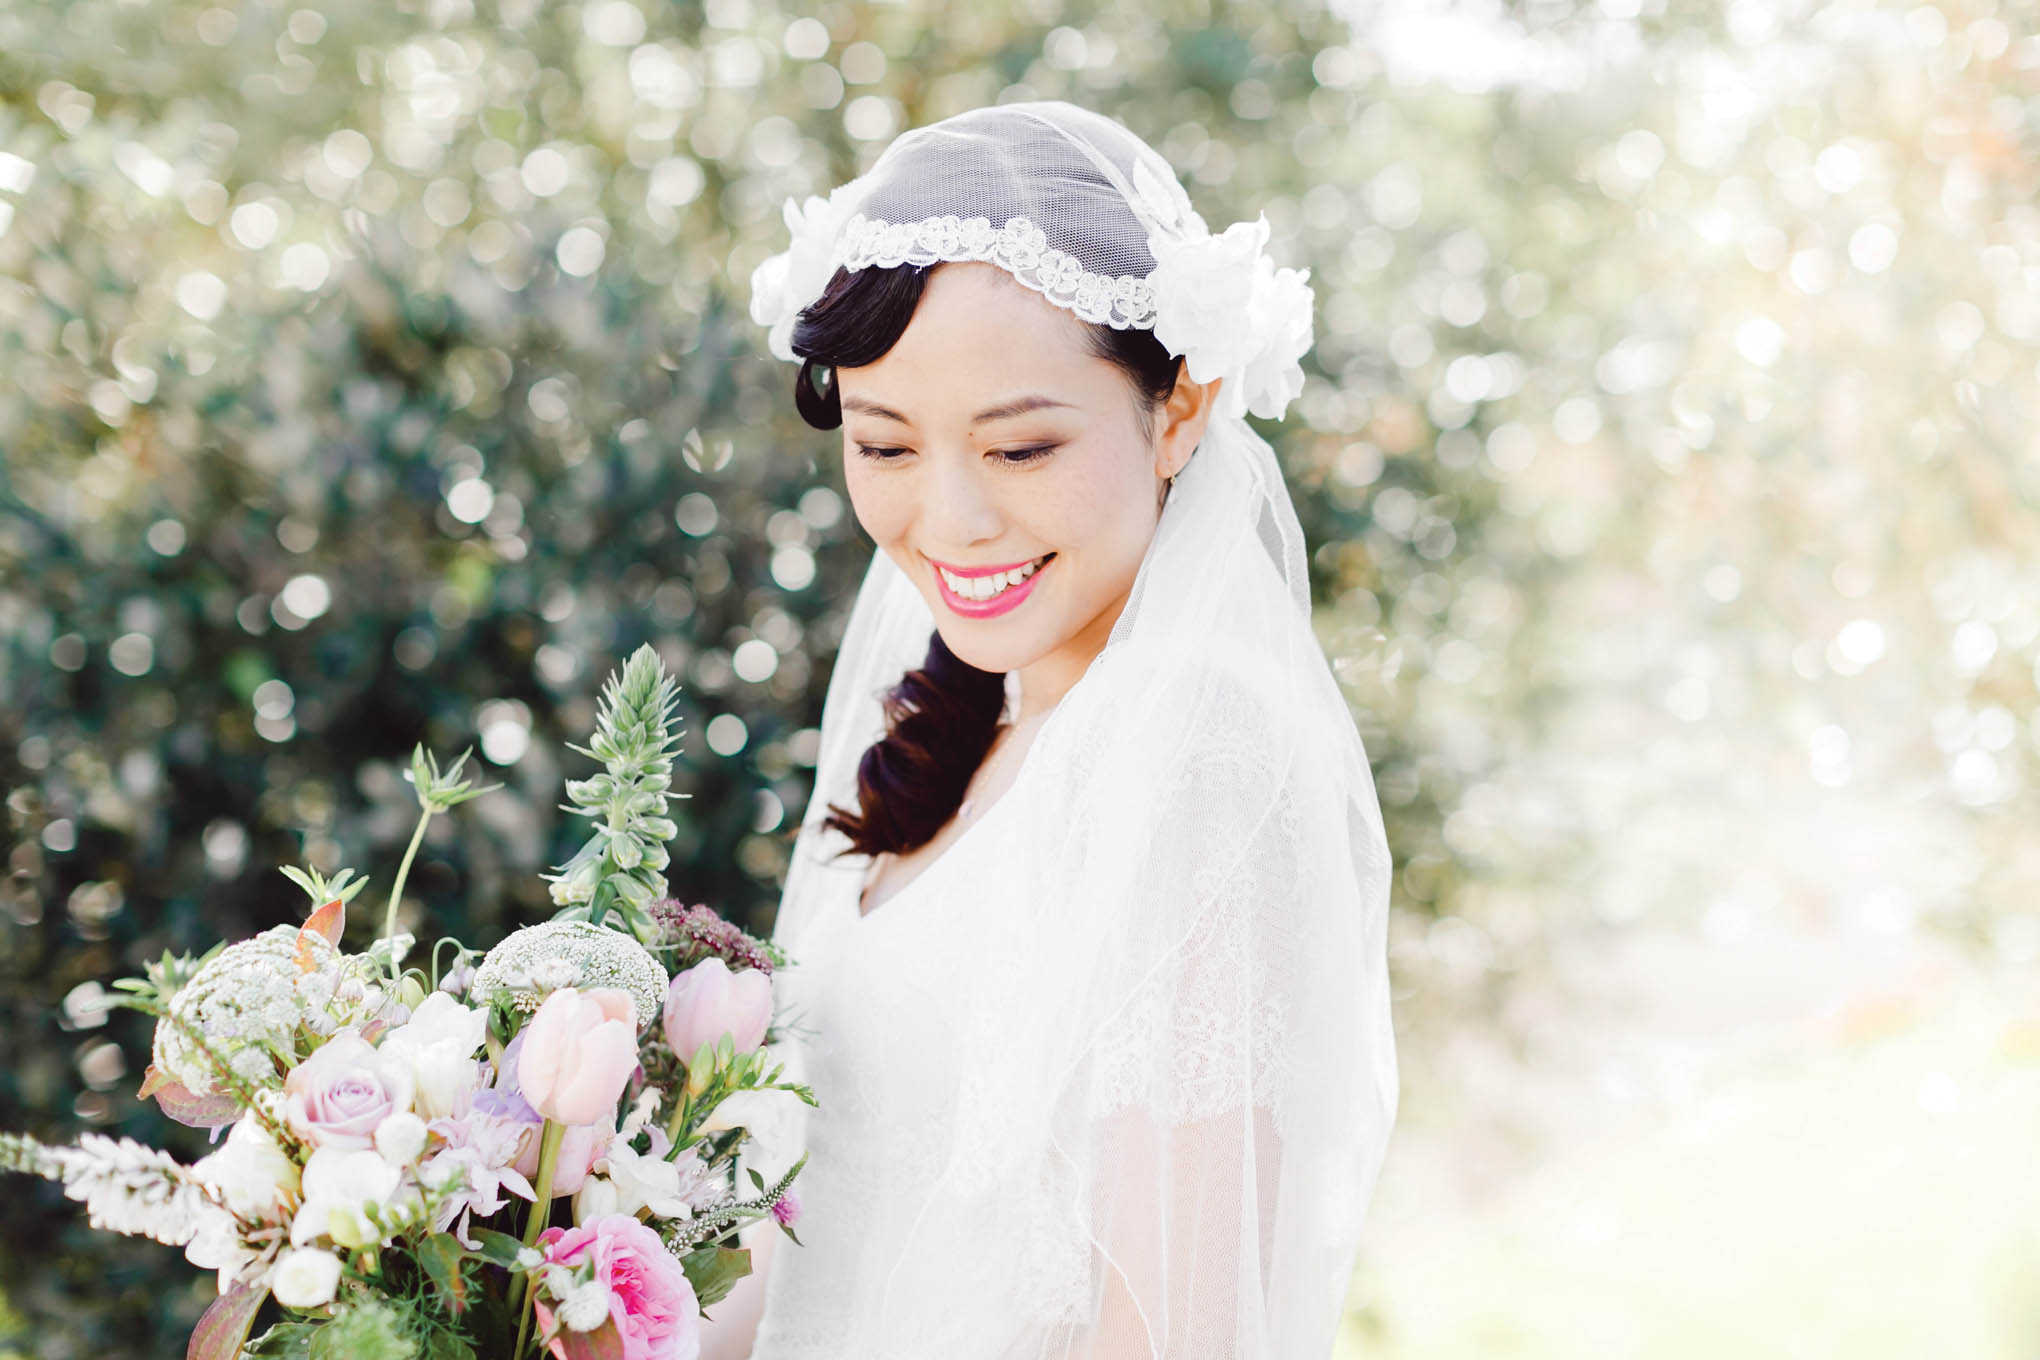 Categories: Weddings-Real Wedding: Ivy + Stanley – Photography by Courtney Horwood